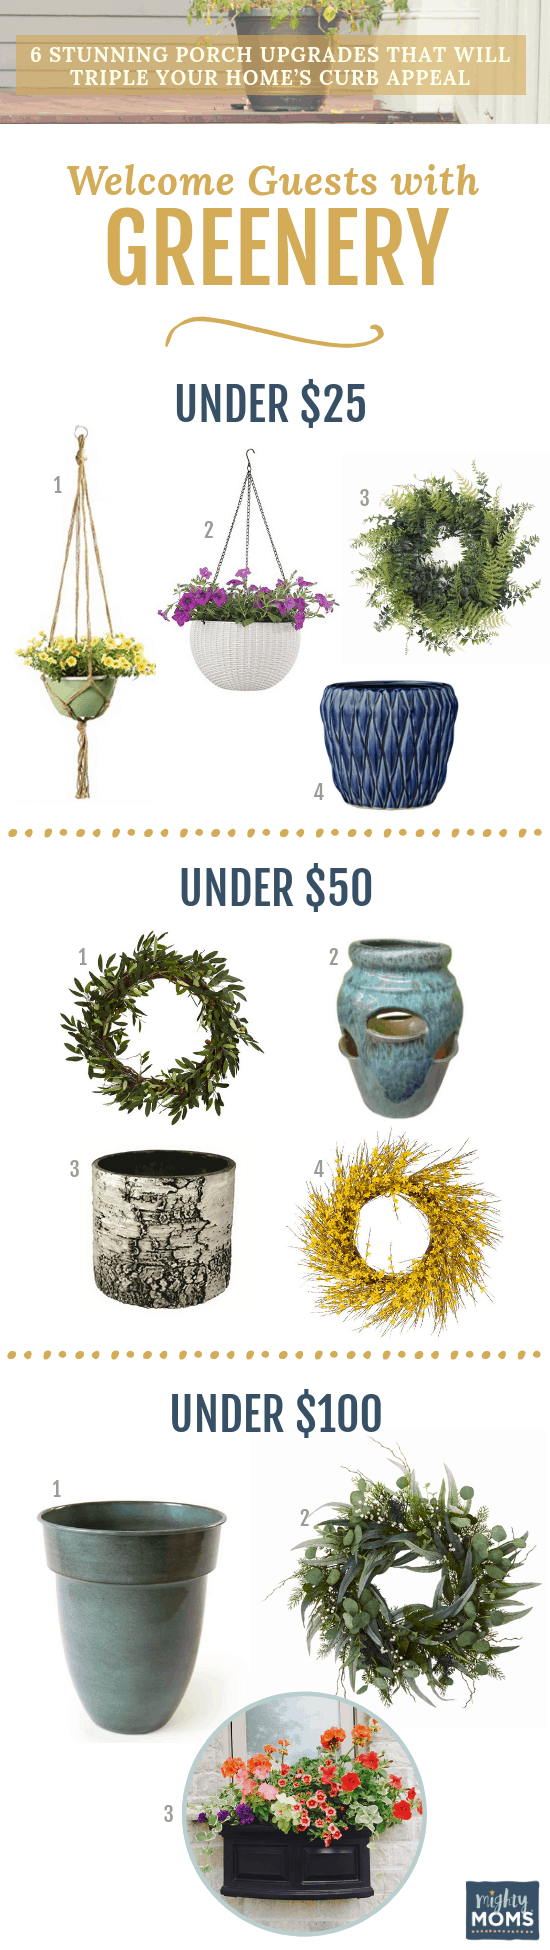 Increase Your Curb Appeal with Greenery - MightyMoms.club